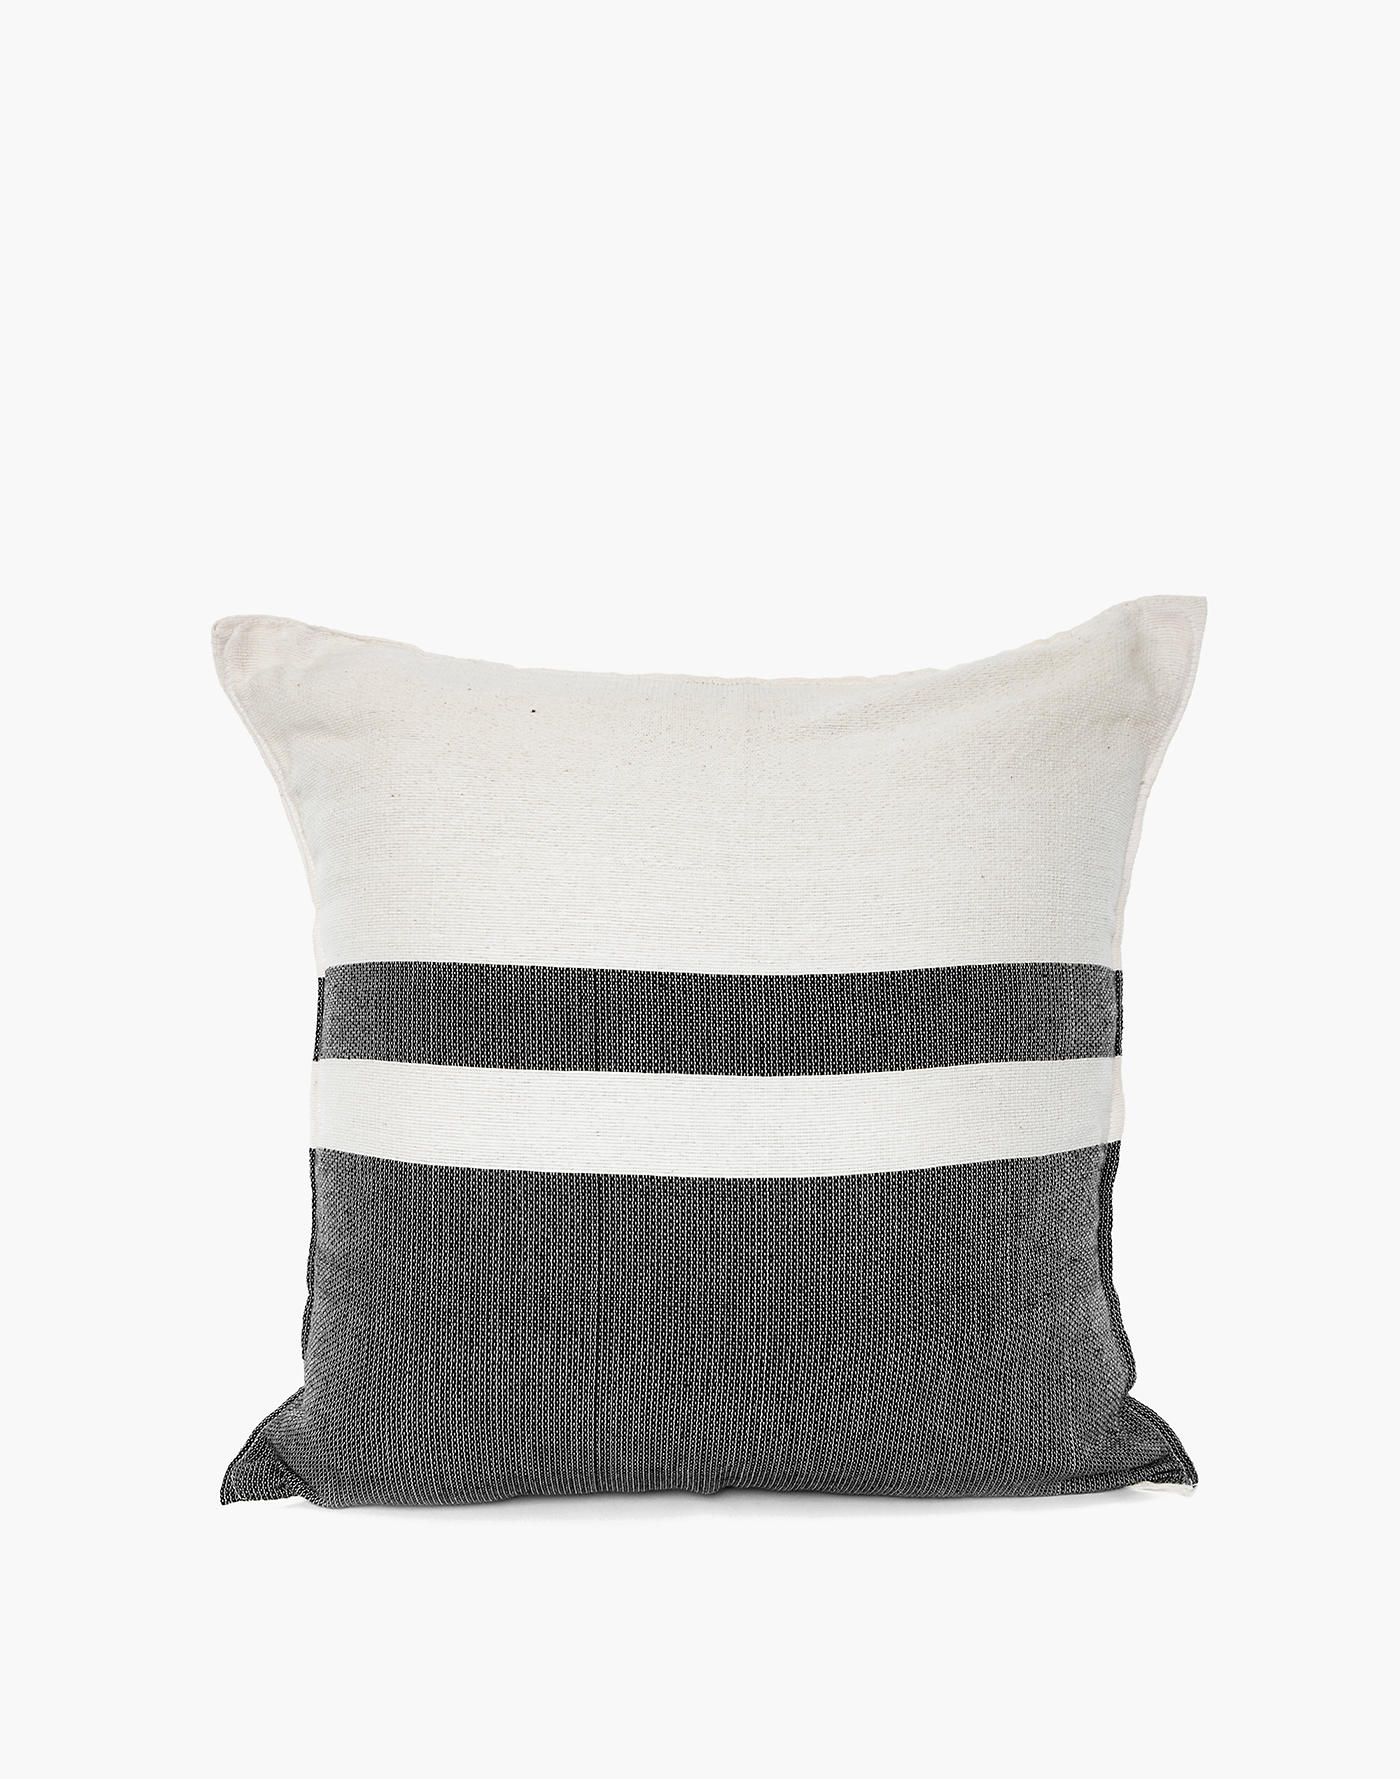 Madewell Nativa Woven Pillow Cover in Black